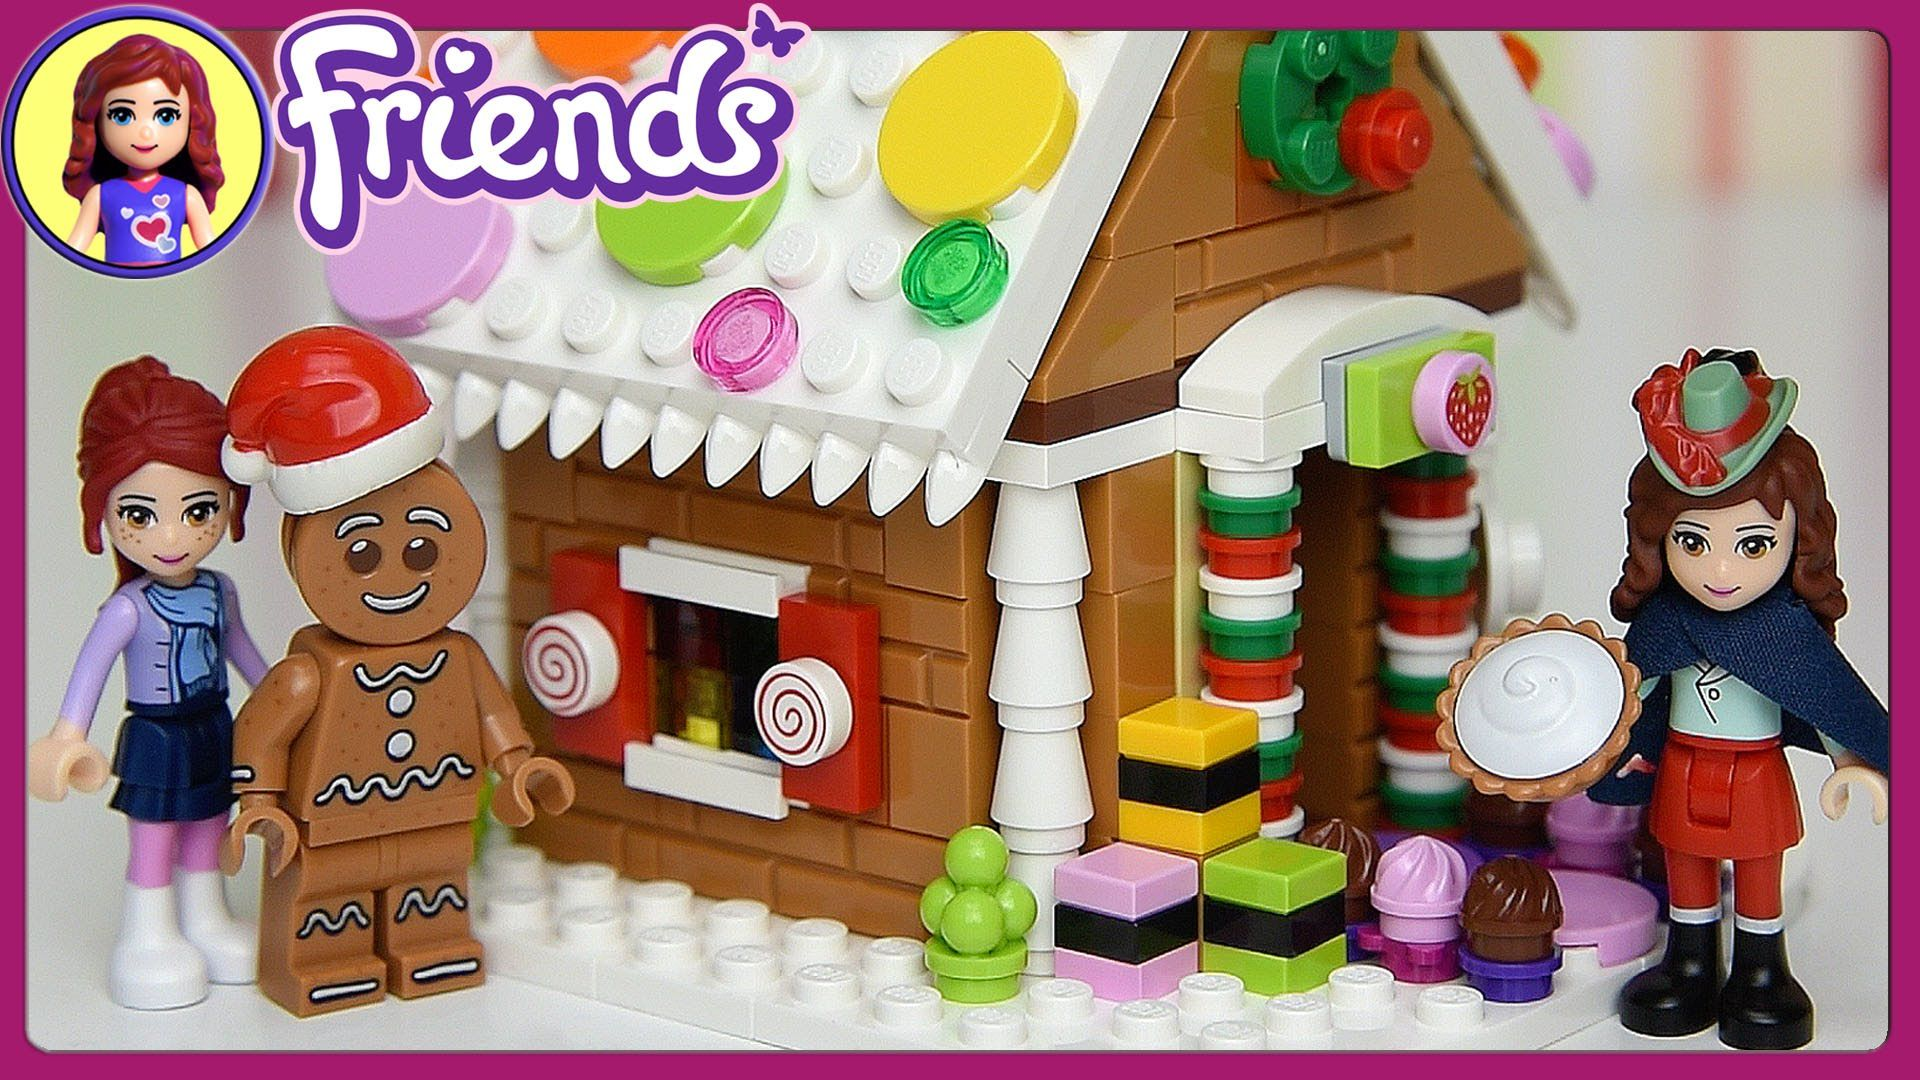 Lego Friends Build Christmas Gingerbread House Set Build